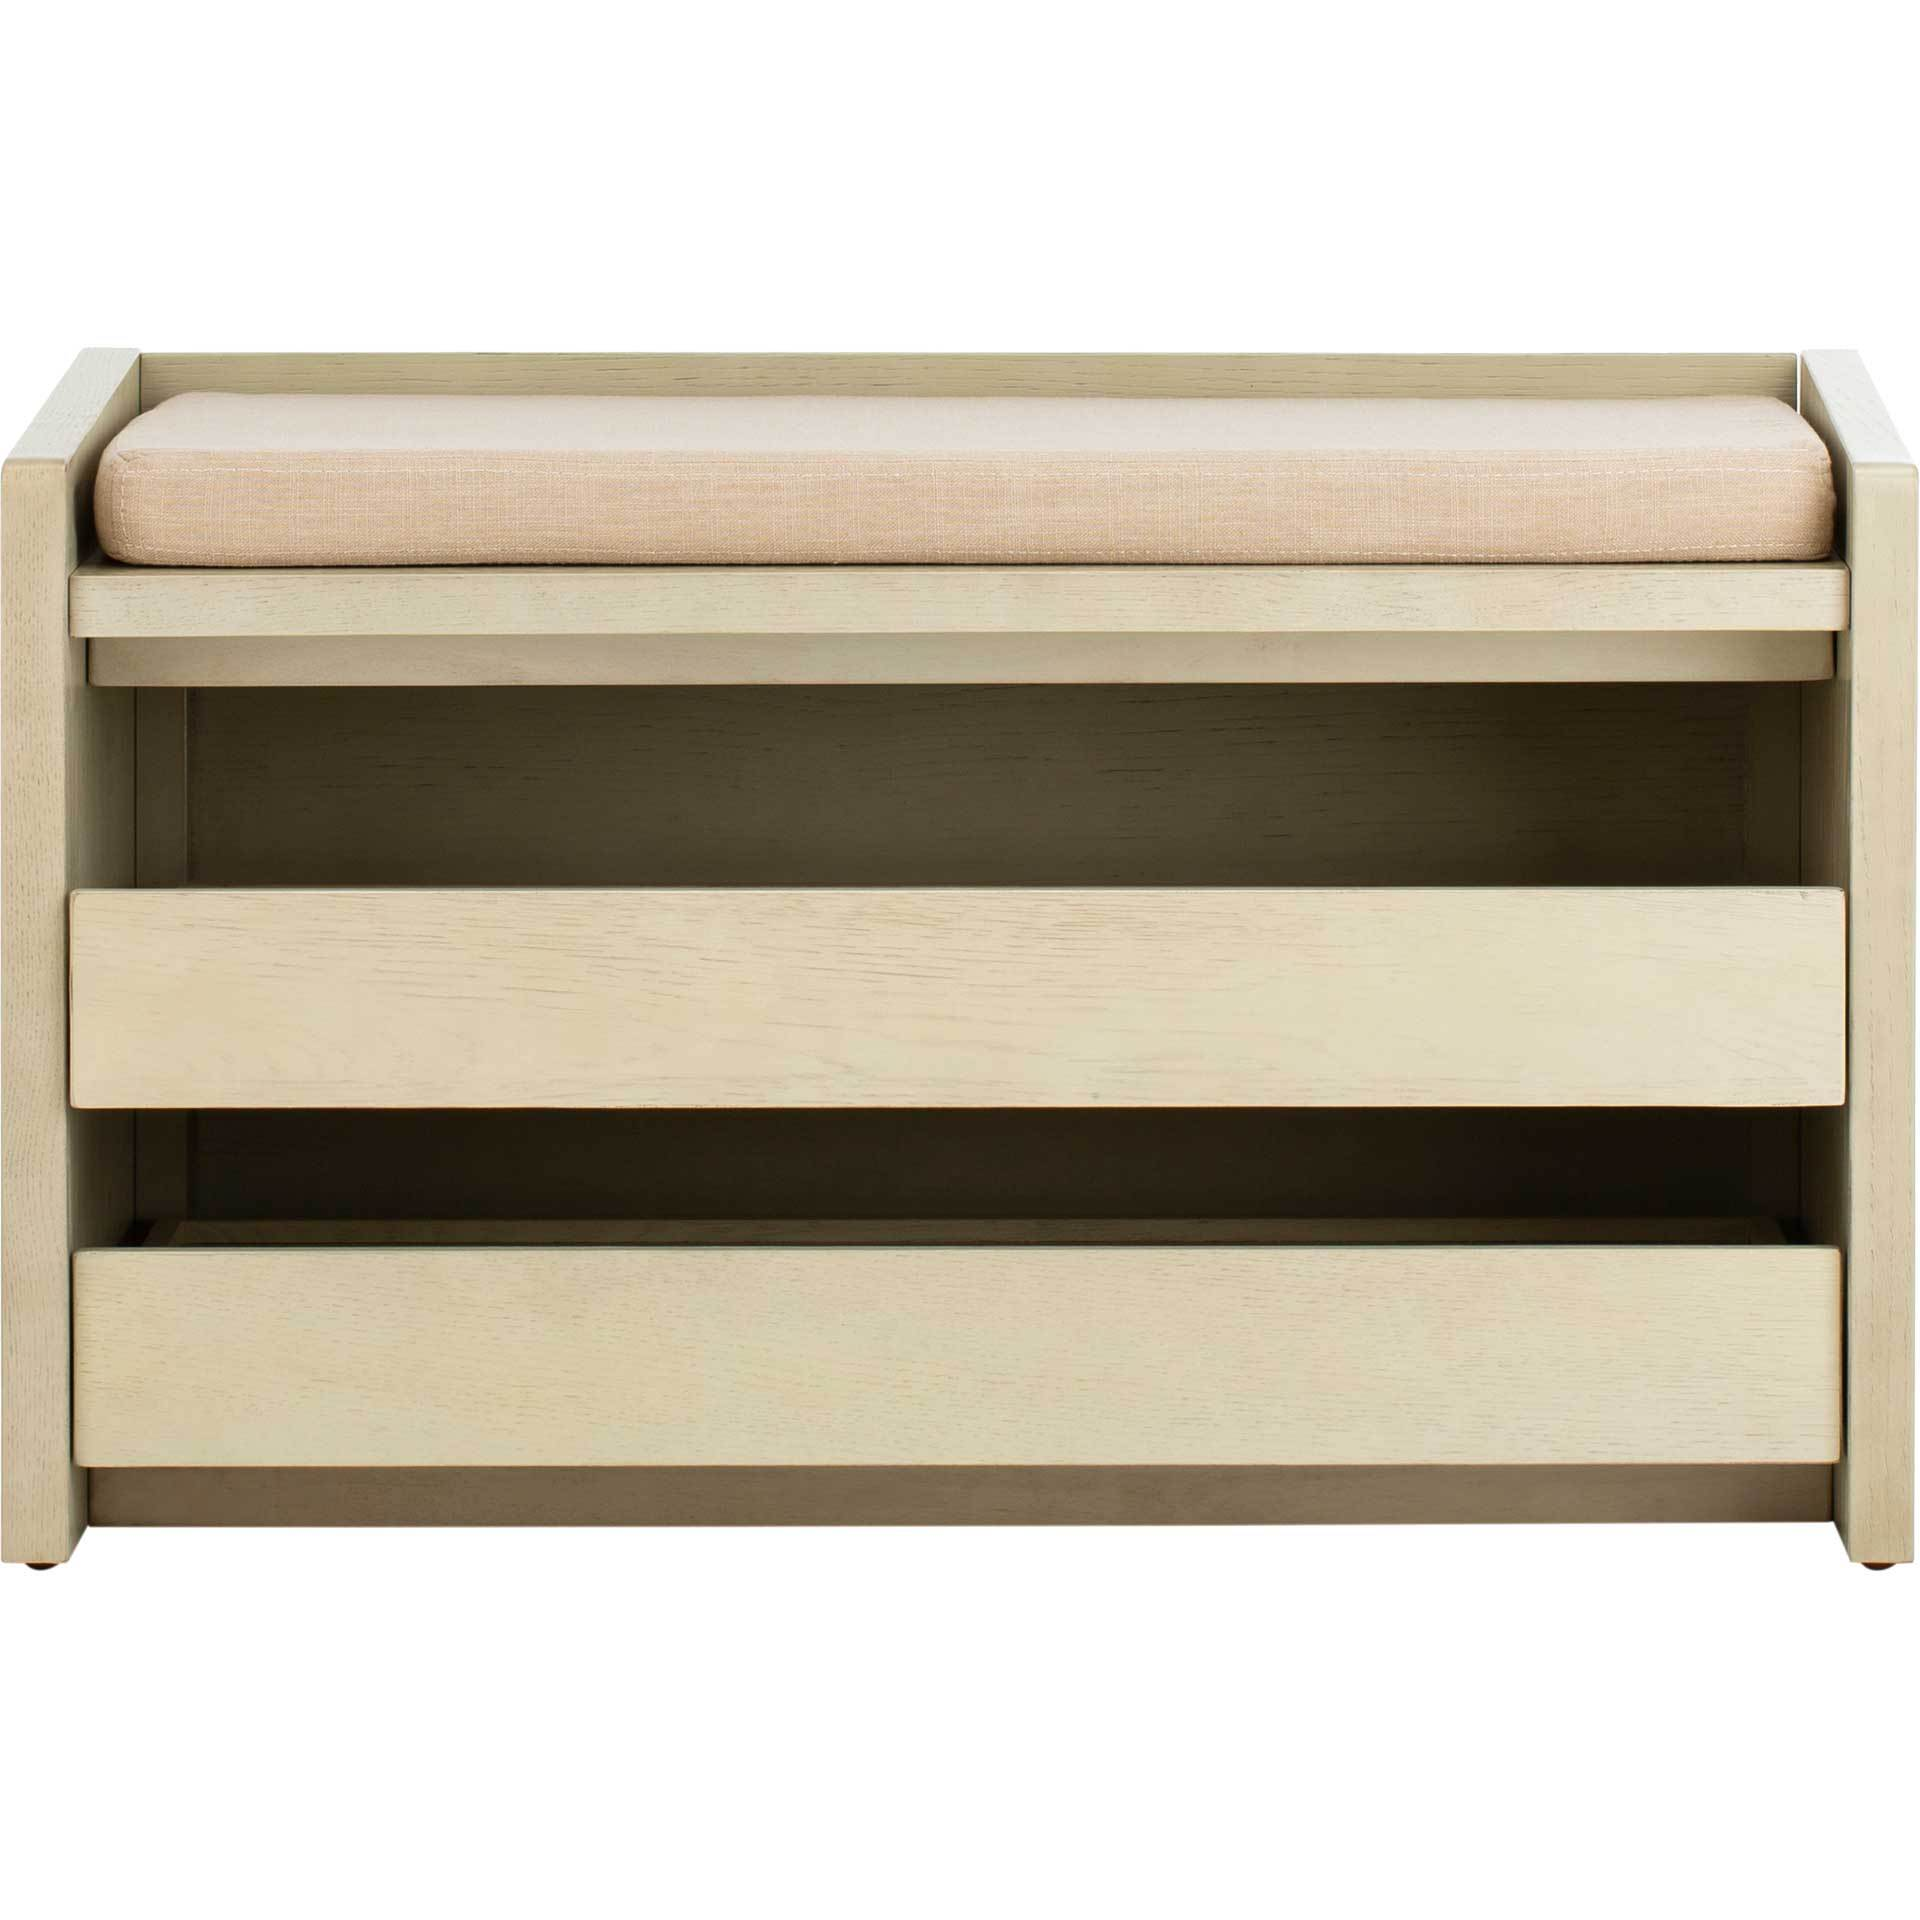 Perla Storage Bench White Wash/Beige